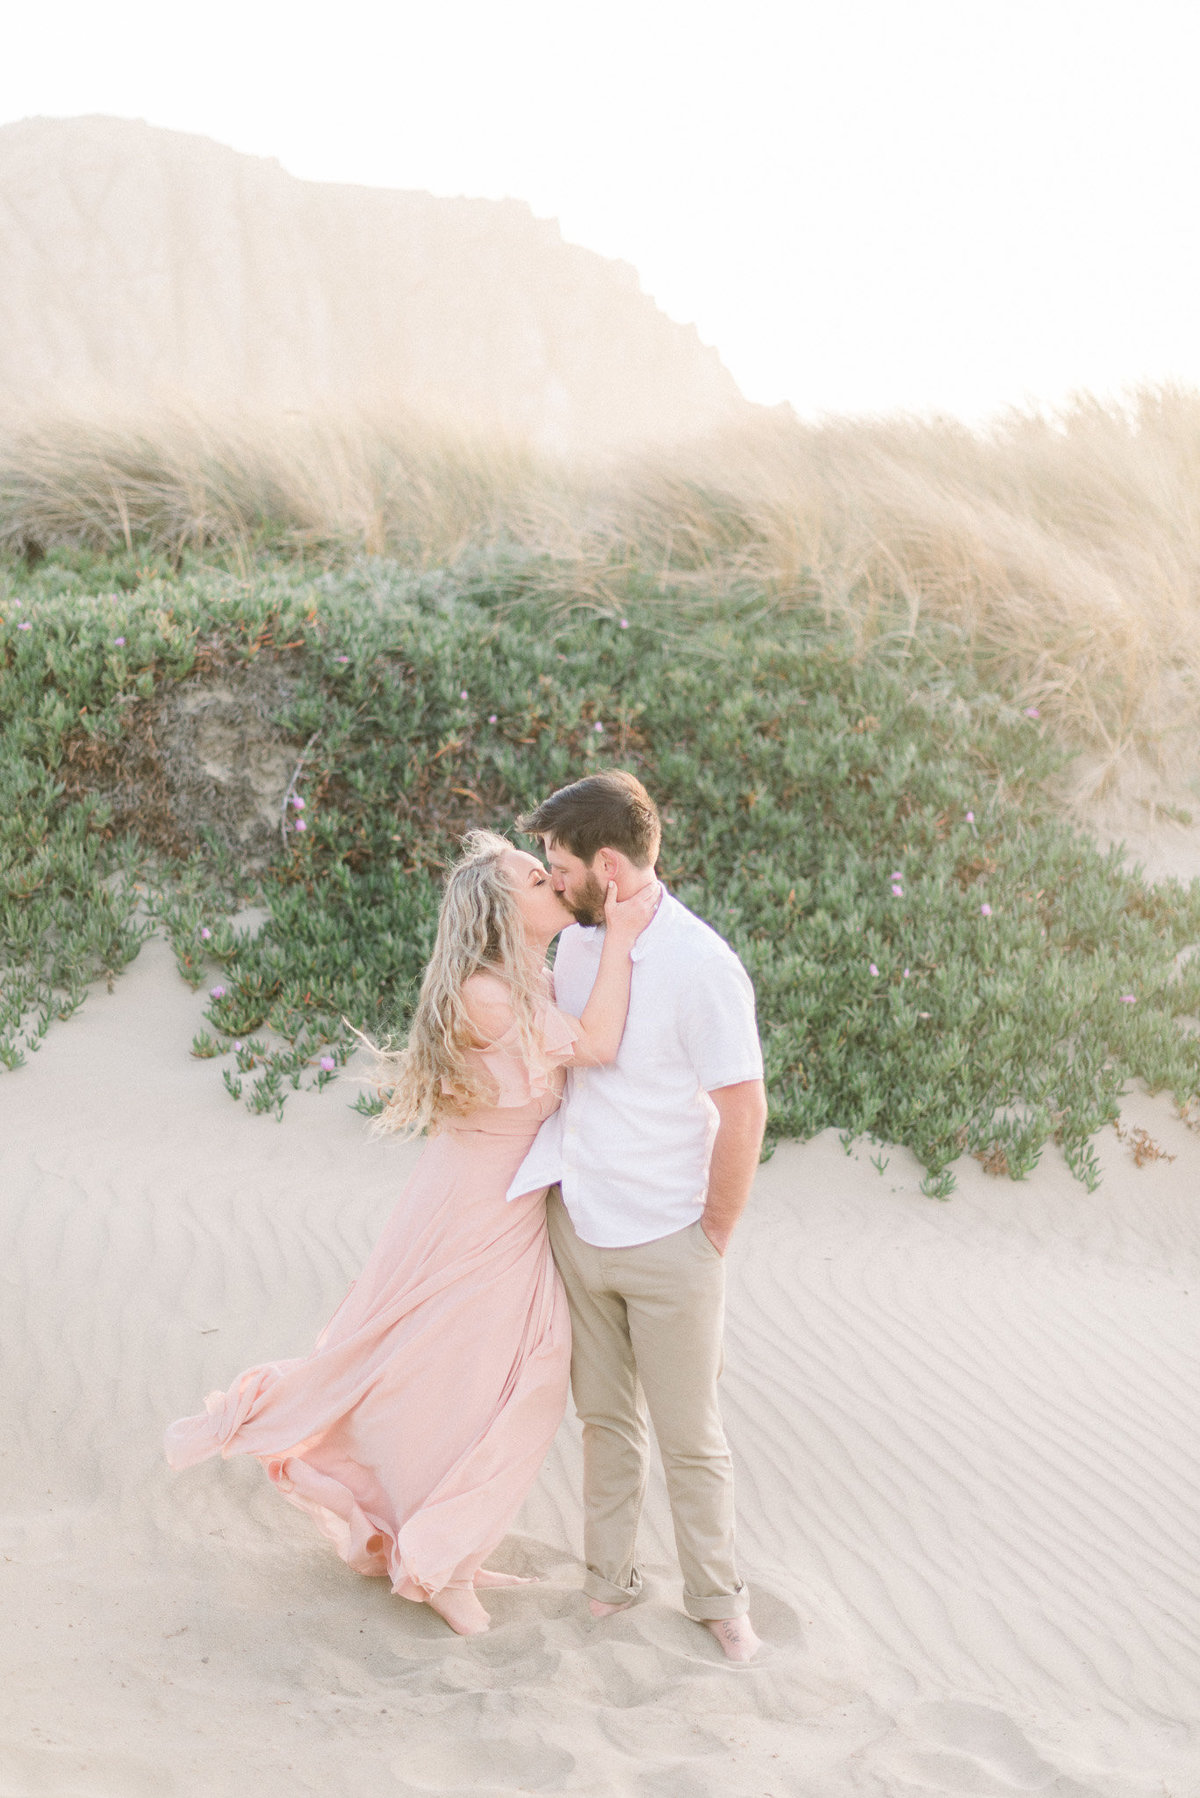 BLOG_2020-02-29-Emily-DJ-Morro-Bay-Engagment-Session-by-Kirsten-Bullard-Photography-94